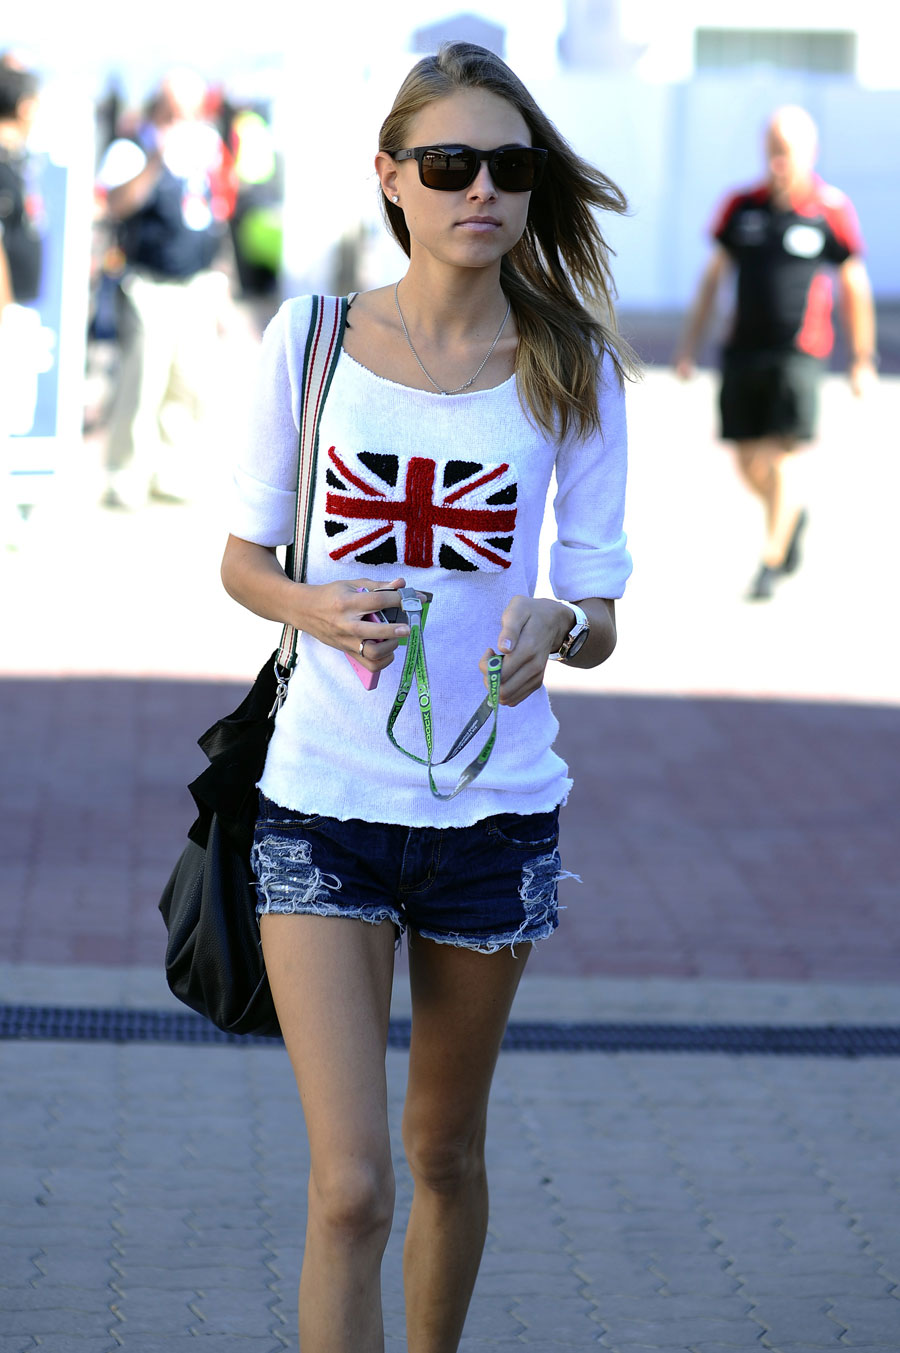 Fernando Alonso's girlfriend Dasha Kapustina arrives in the paddock